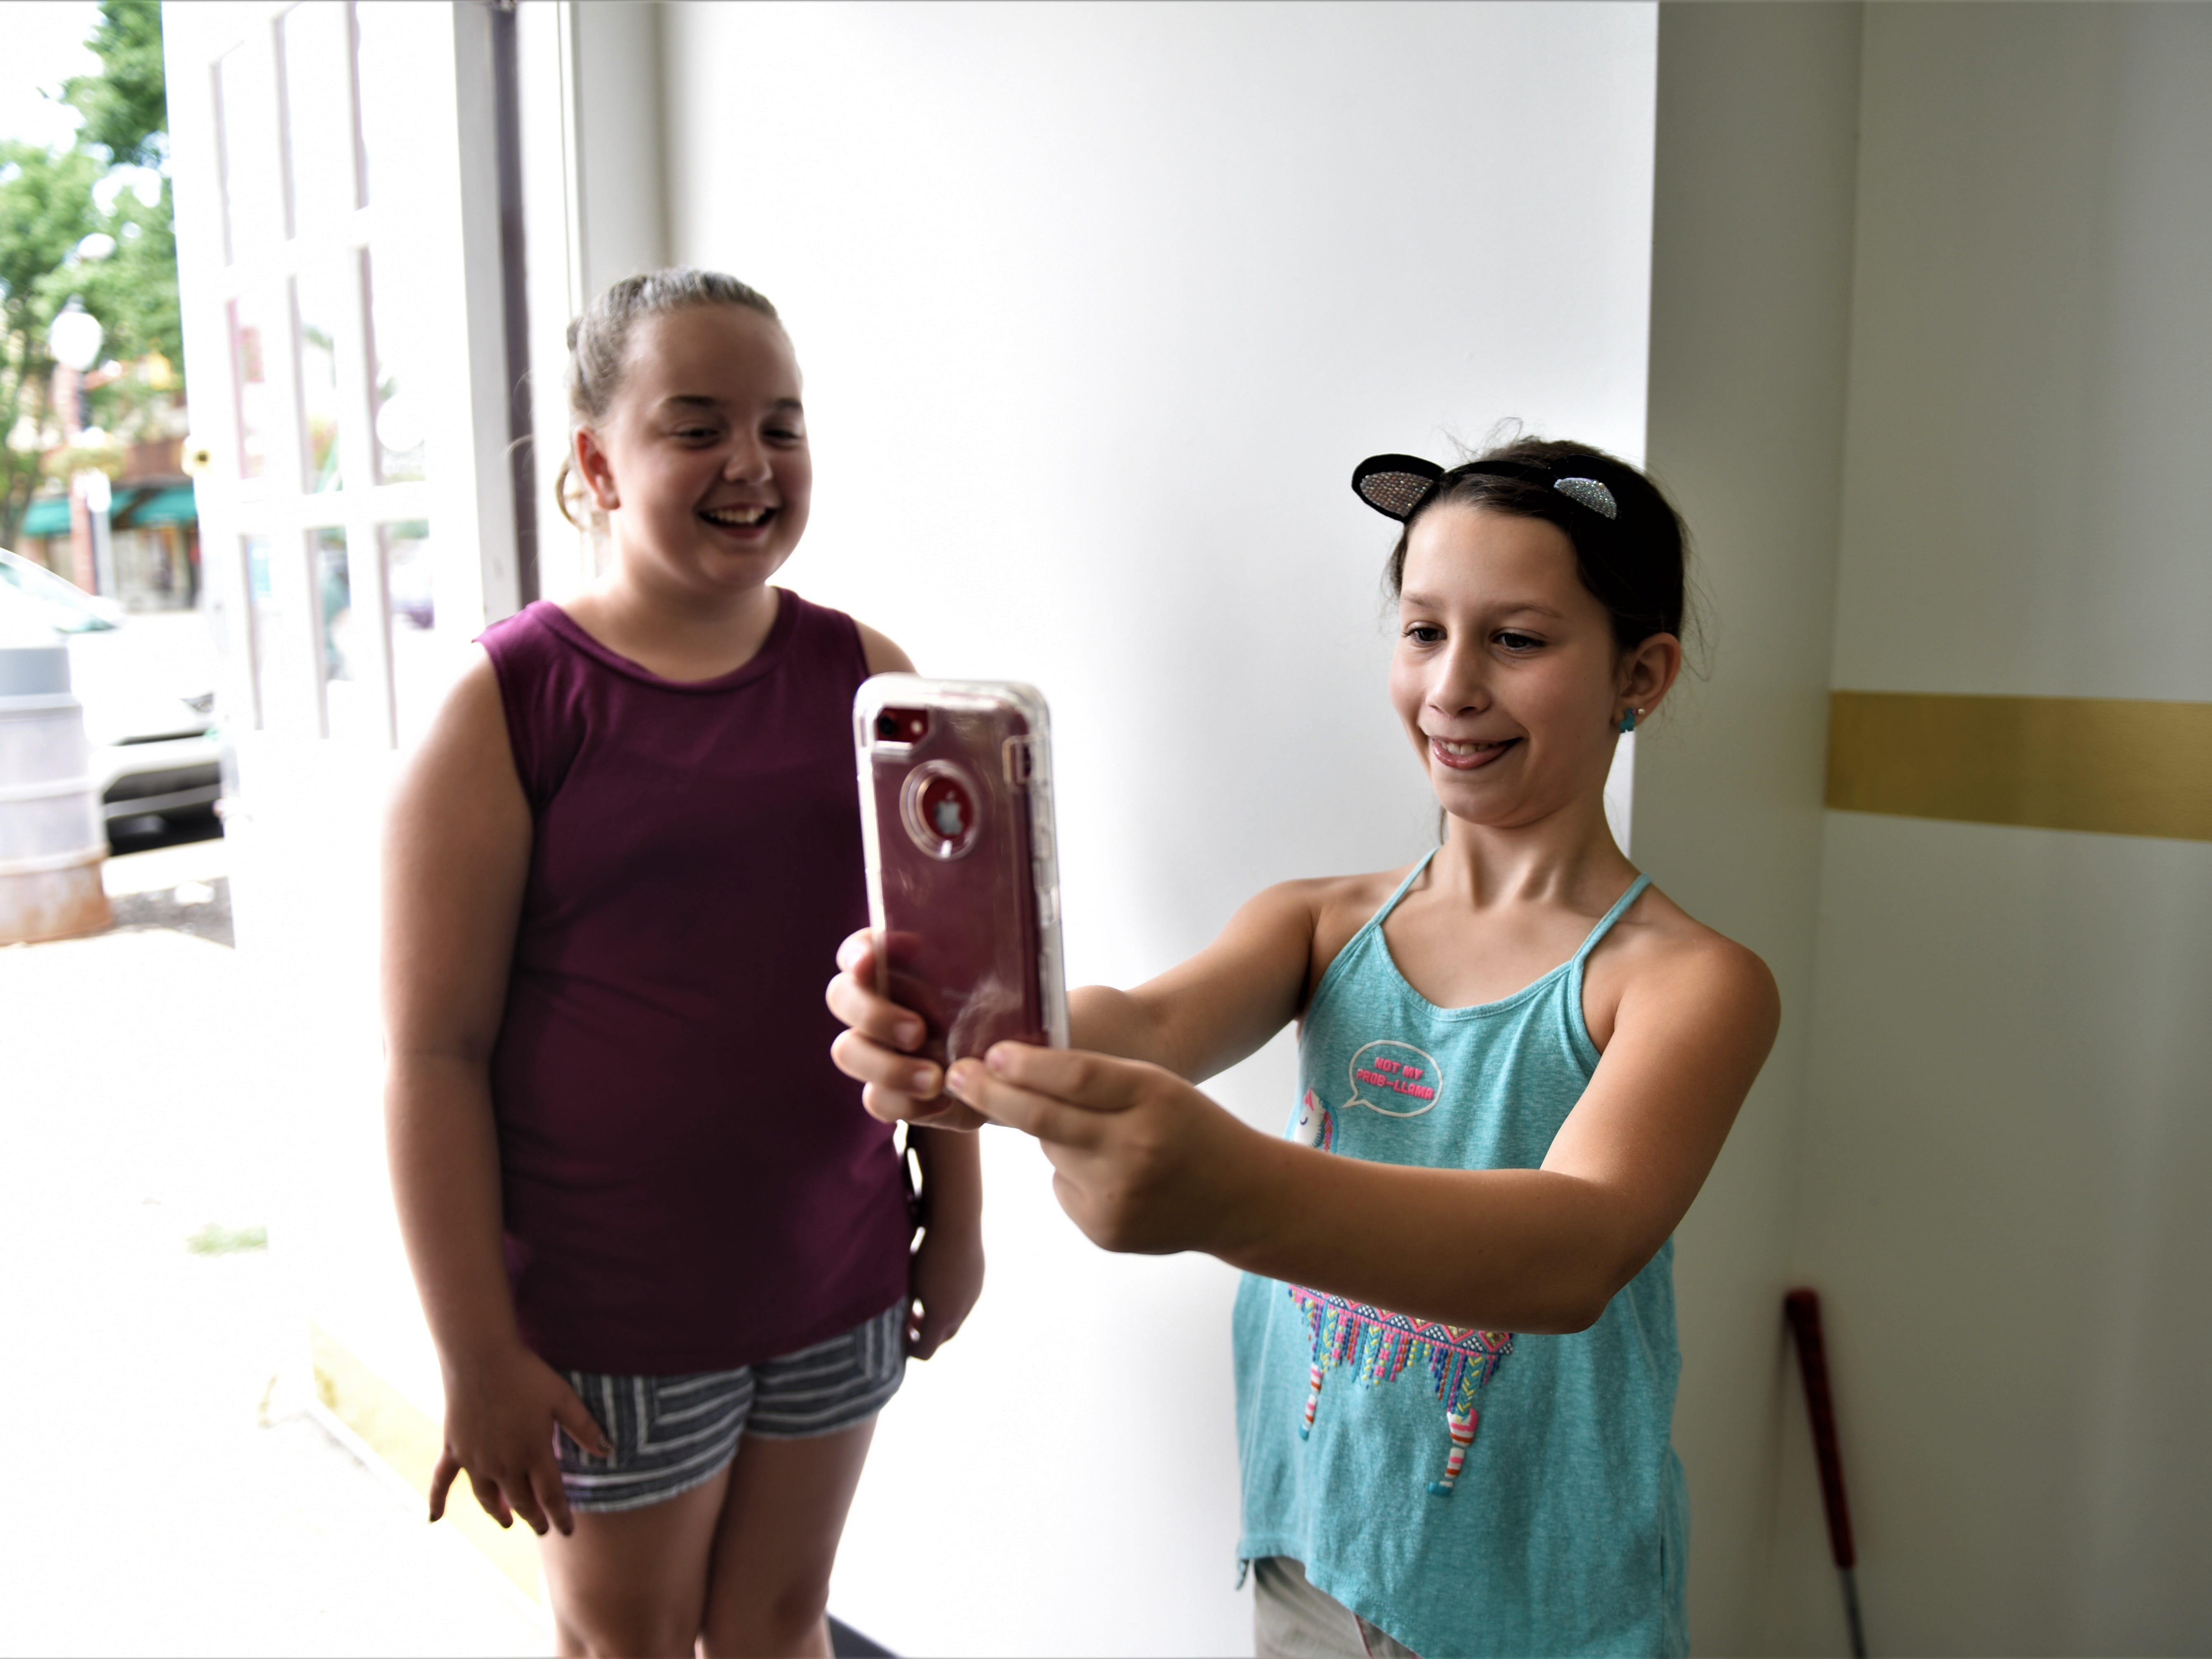 Stella Rice, 11, and Esmae Stillman, 9, (she introduced herself as Esmae Garbanzo Bean) are taking a selfie in RSVP on Aug. 11.